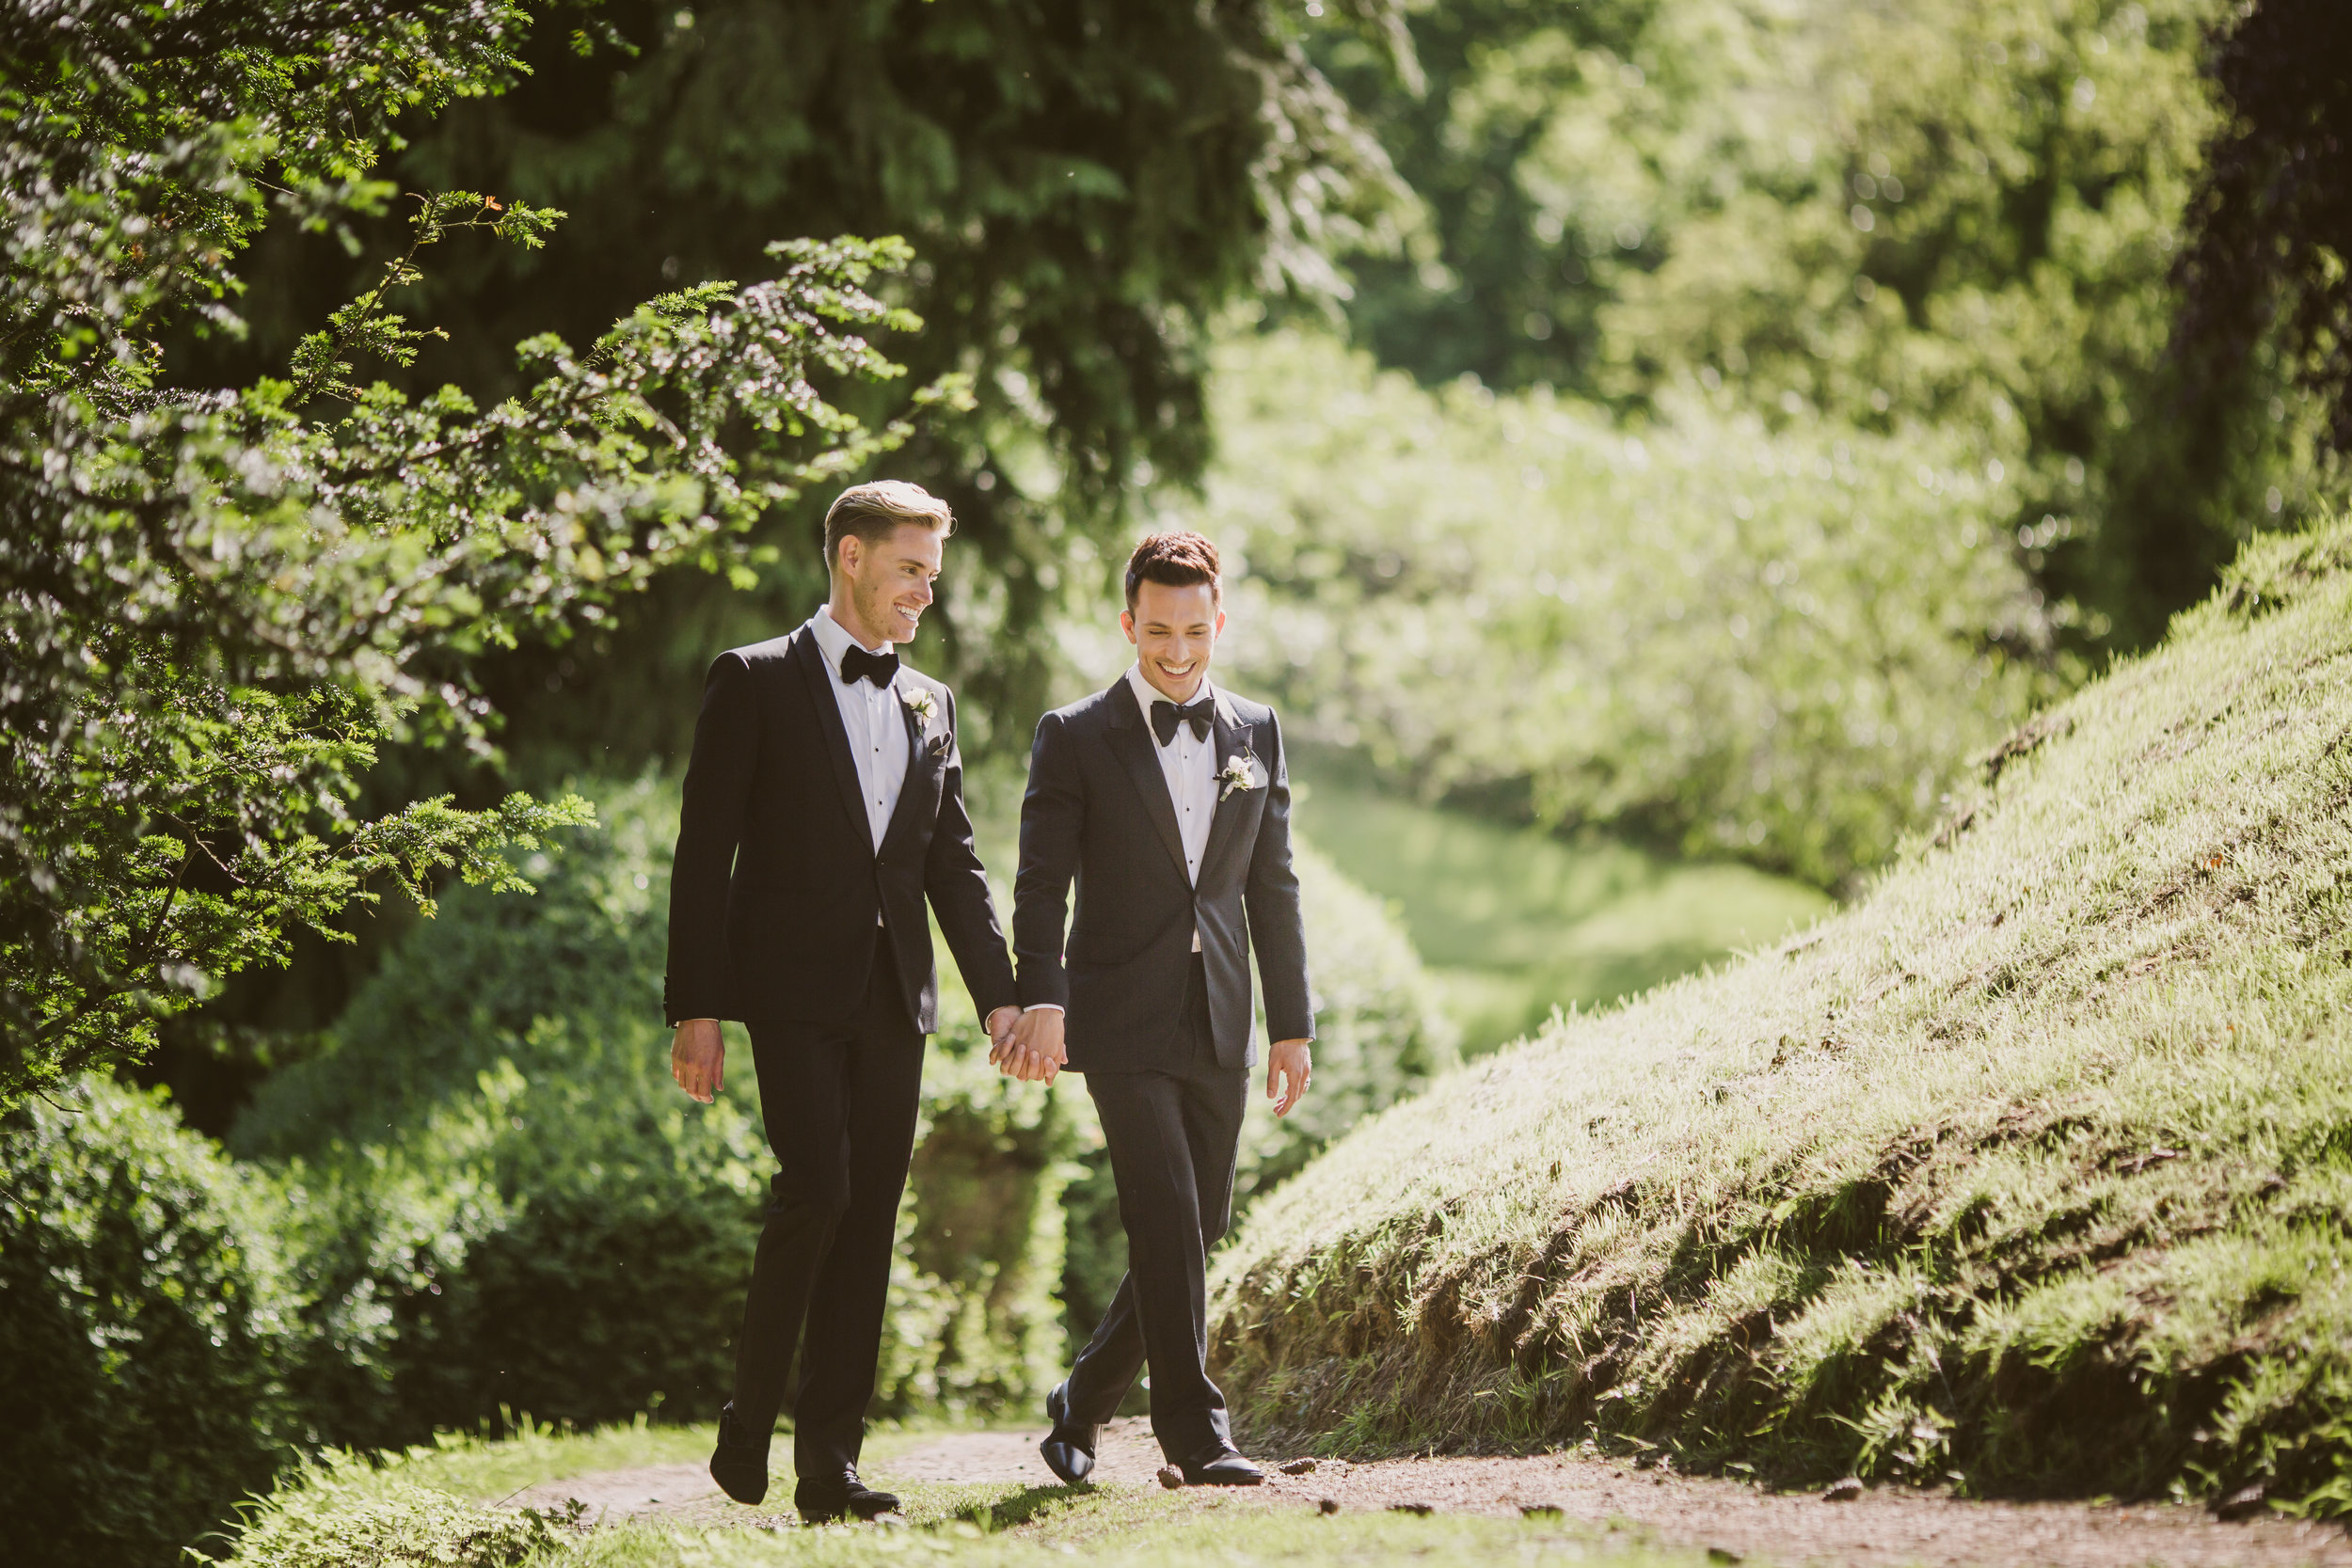 mr-theodore_same-sex-wedding17.jpg